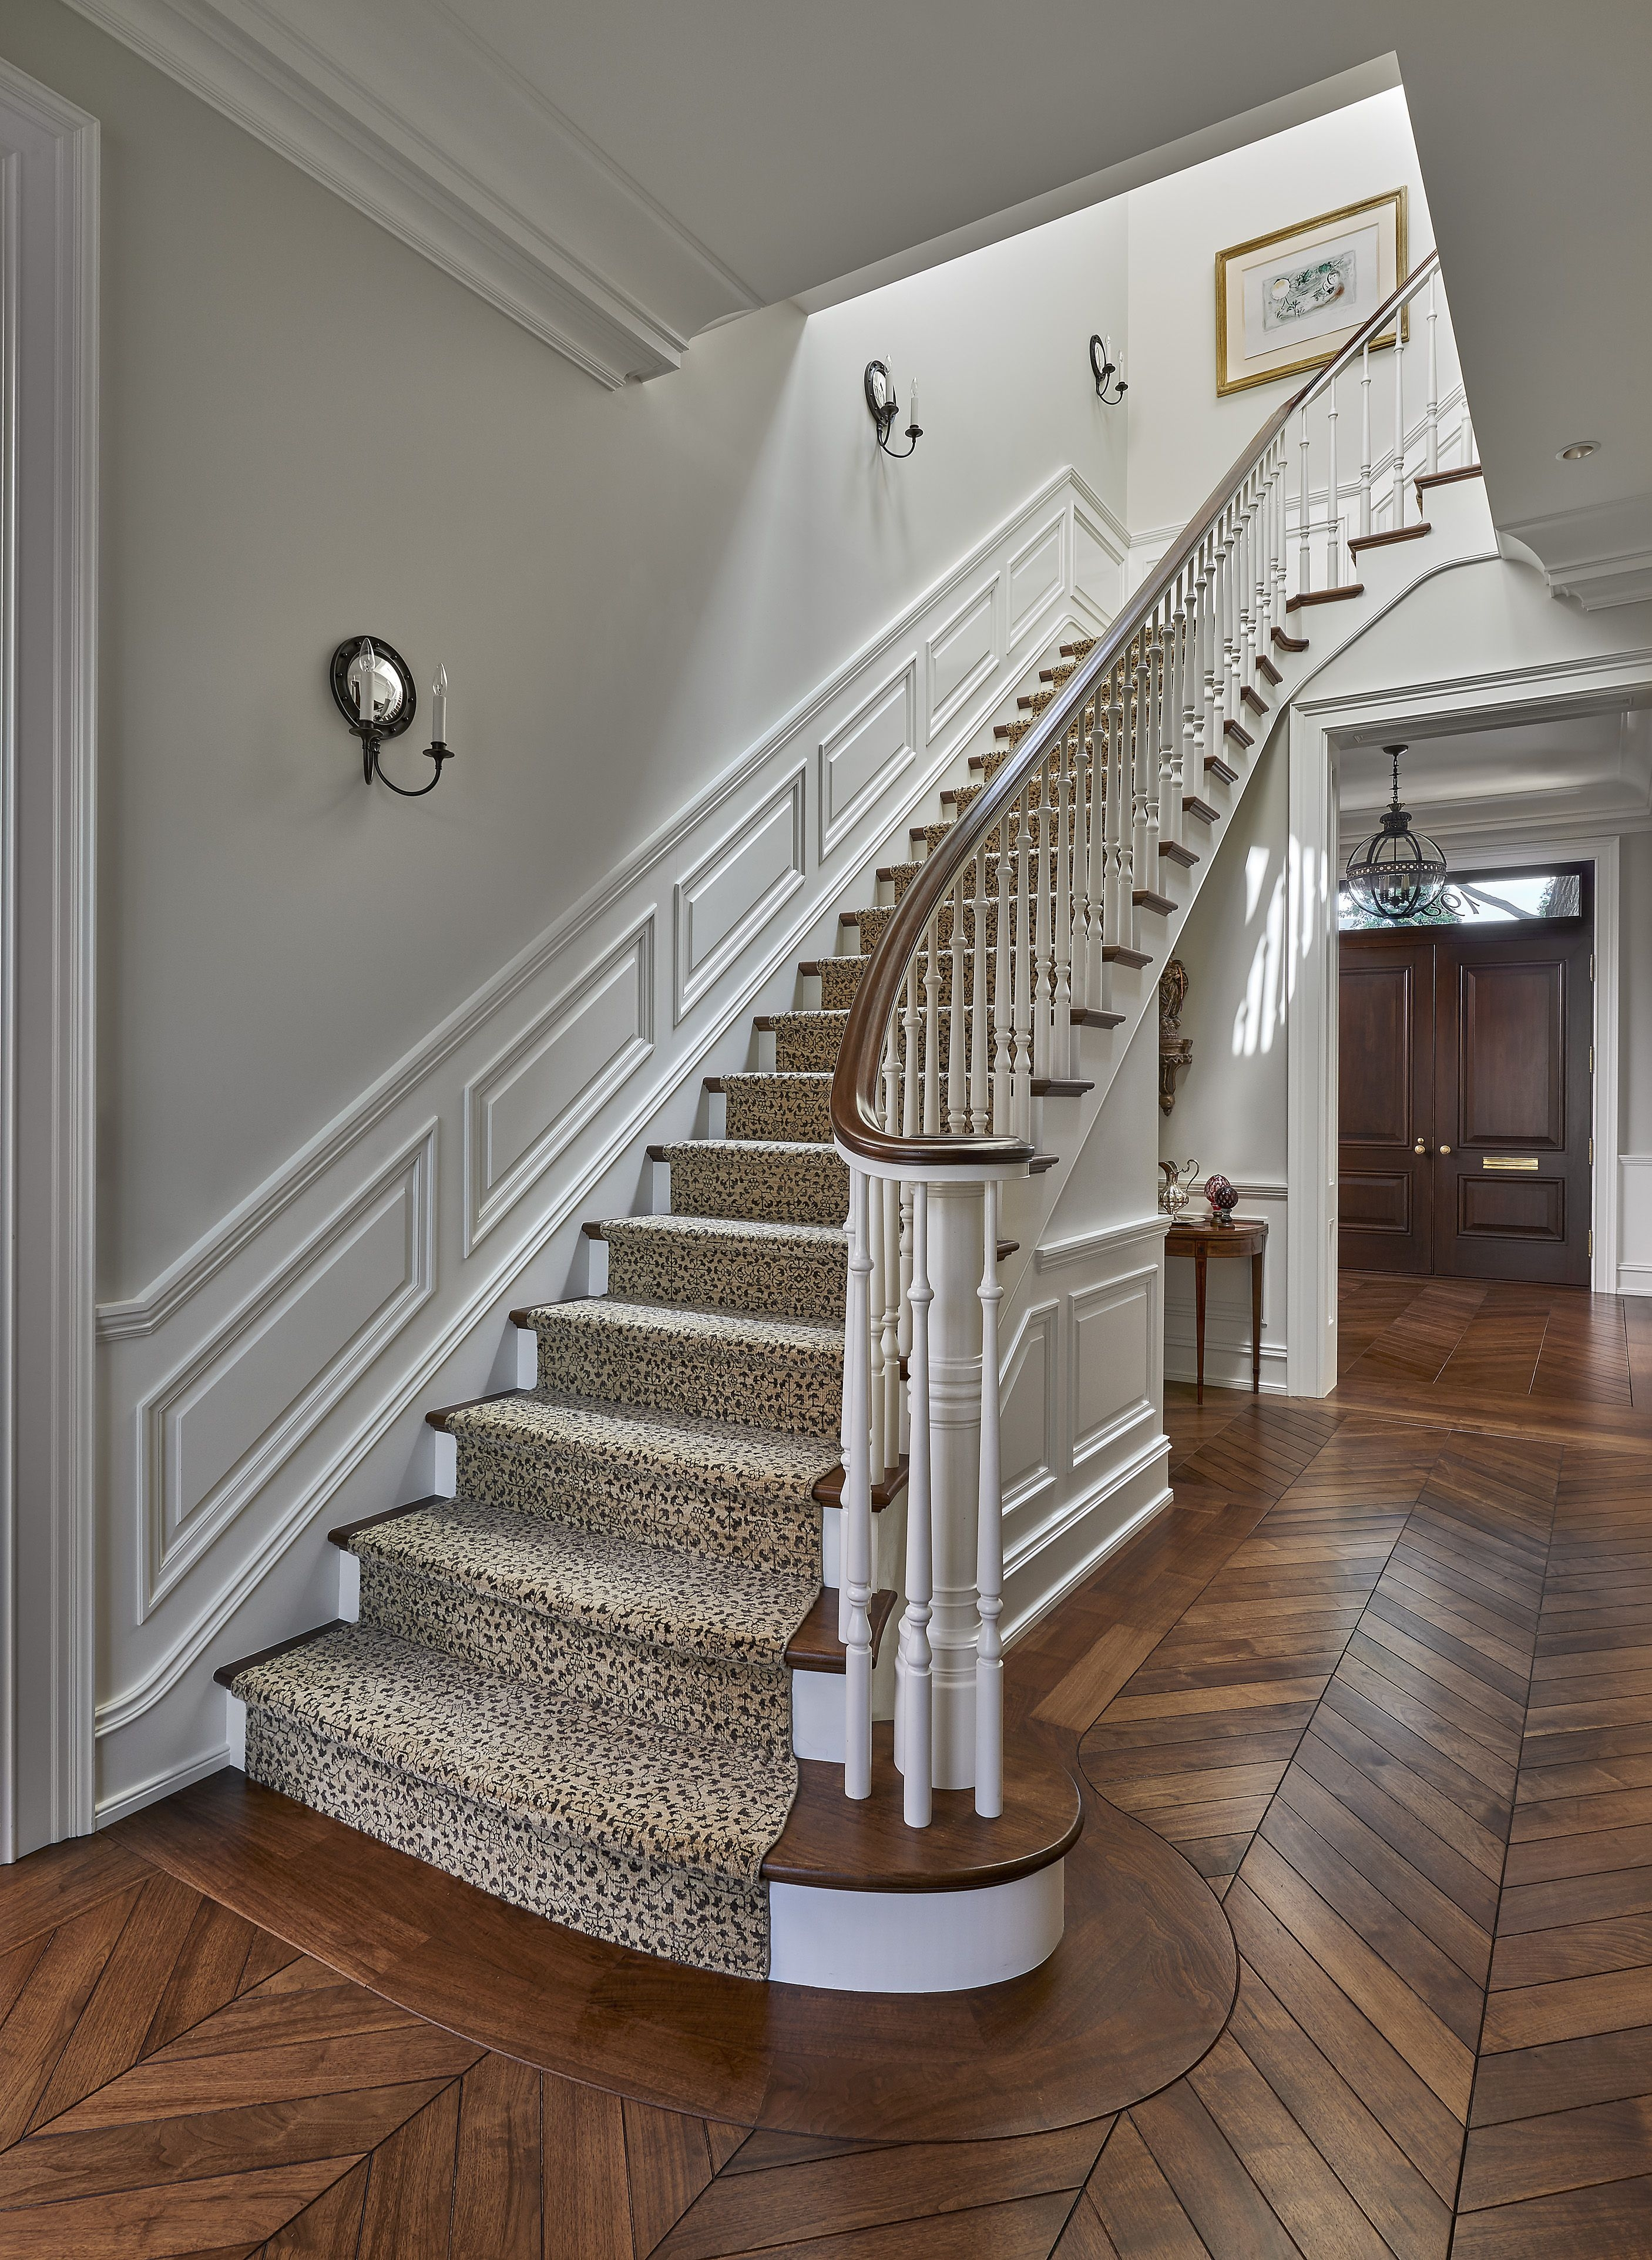 25 Stunning Carpeted Staircase Ideas Most Beautiful Staircase | Carpet For Bedrooms And Stairs | Modern Staircase | Staircase Remodel | Dark Grey Carpet | Stair Railing | Stair Treads